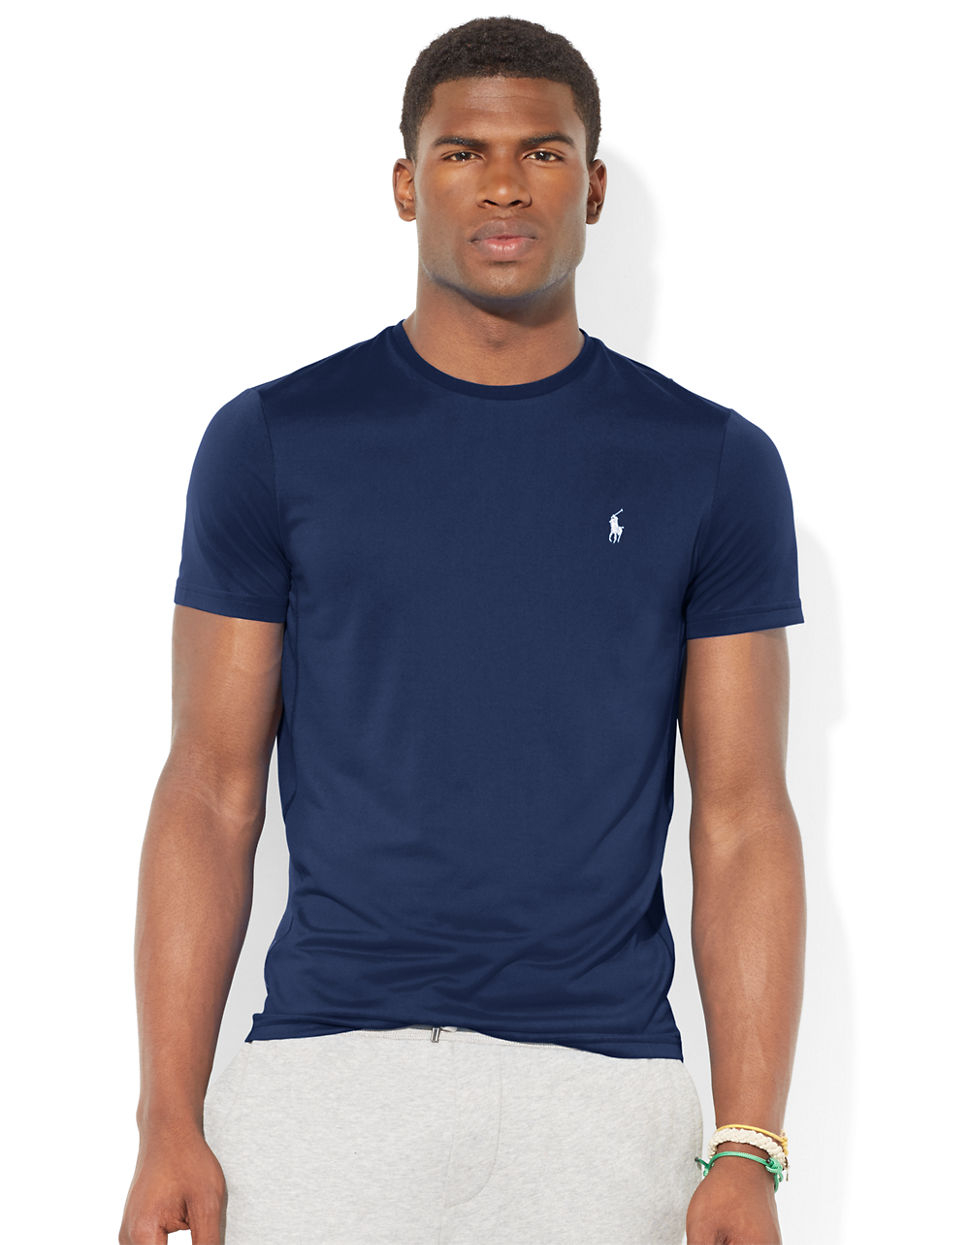 polo ralph lauren performance jersey crewneck t shirt in blue for men. Black Bedroom Furniture Sets. Home Design Ideas